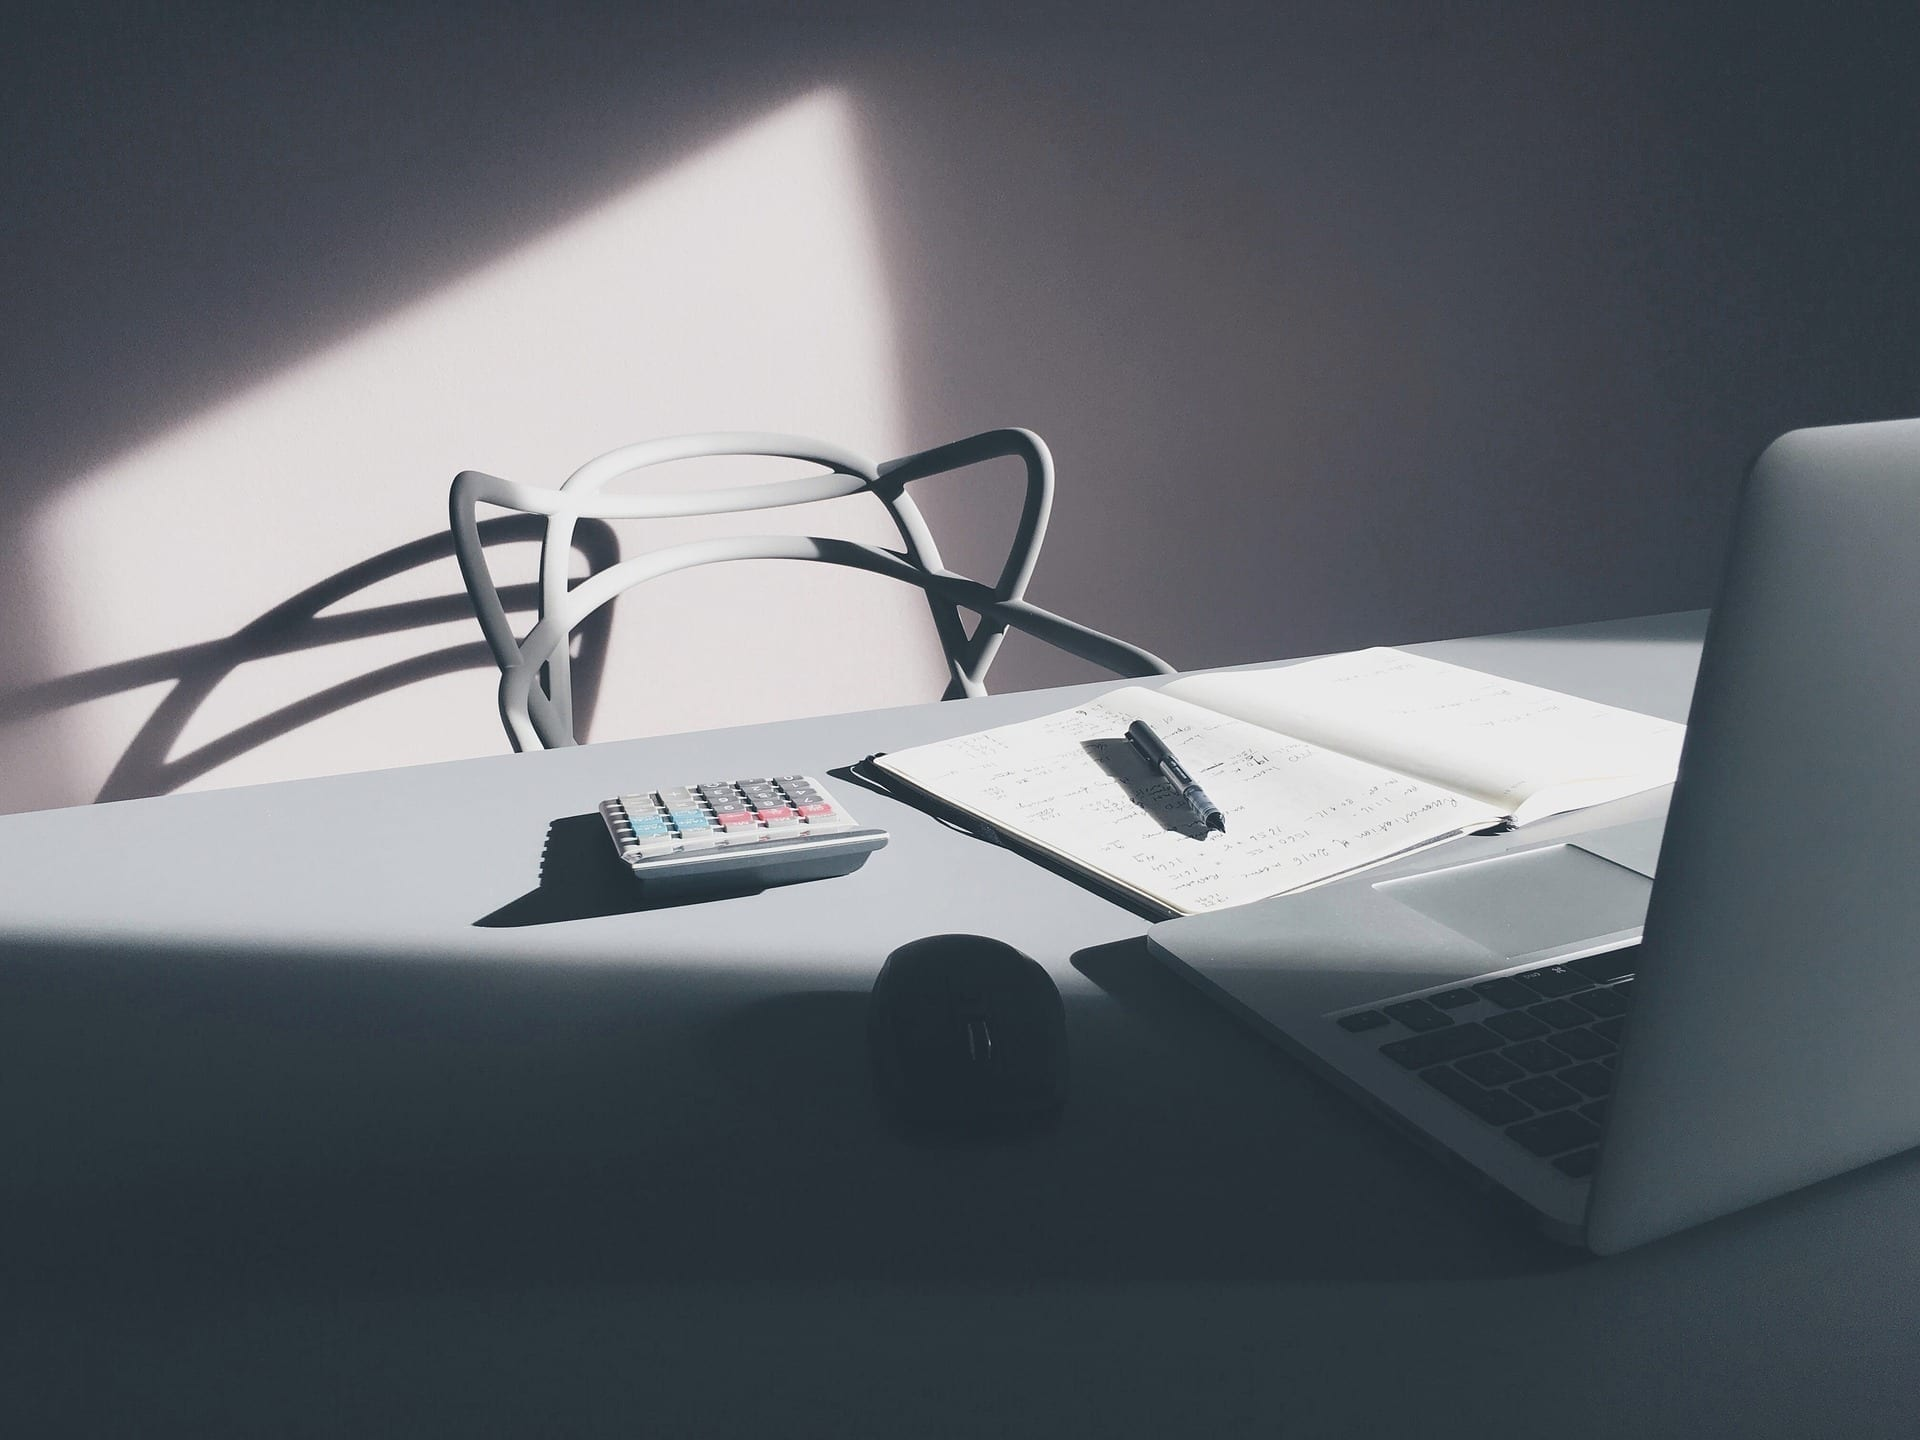 Dark office with white chair behind desk containing calculator and bathroom renovation budget documents